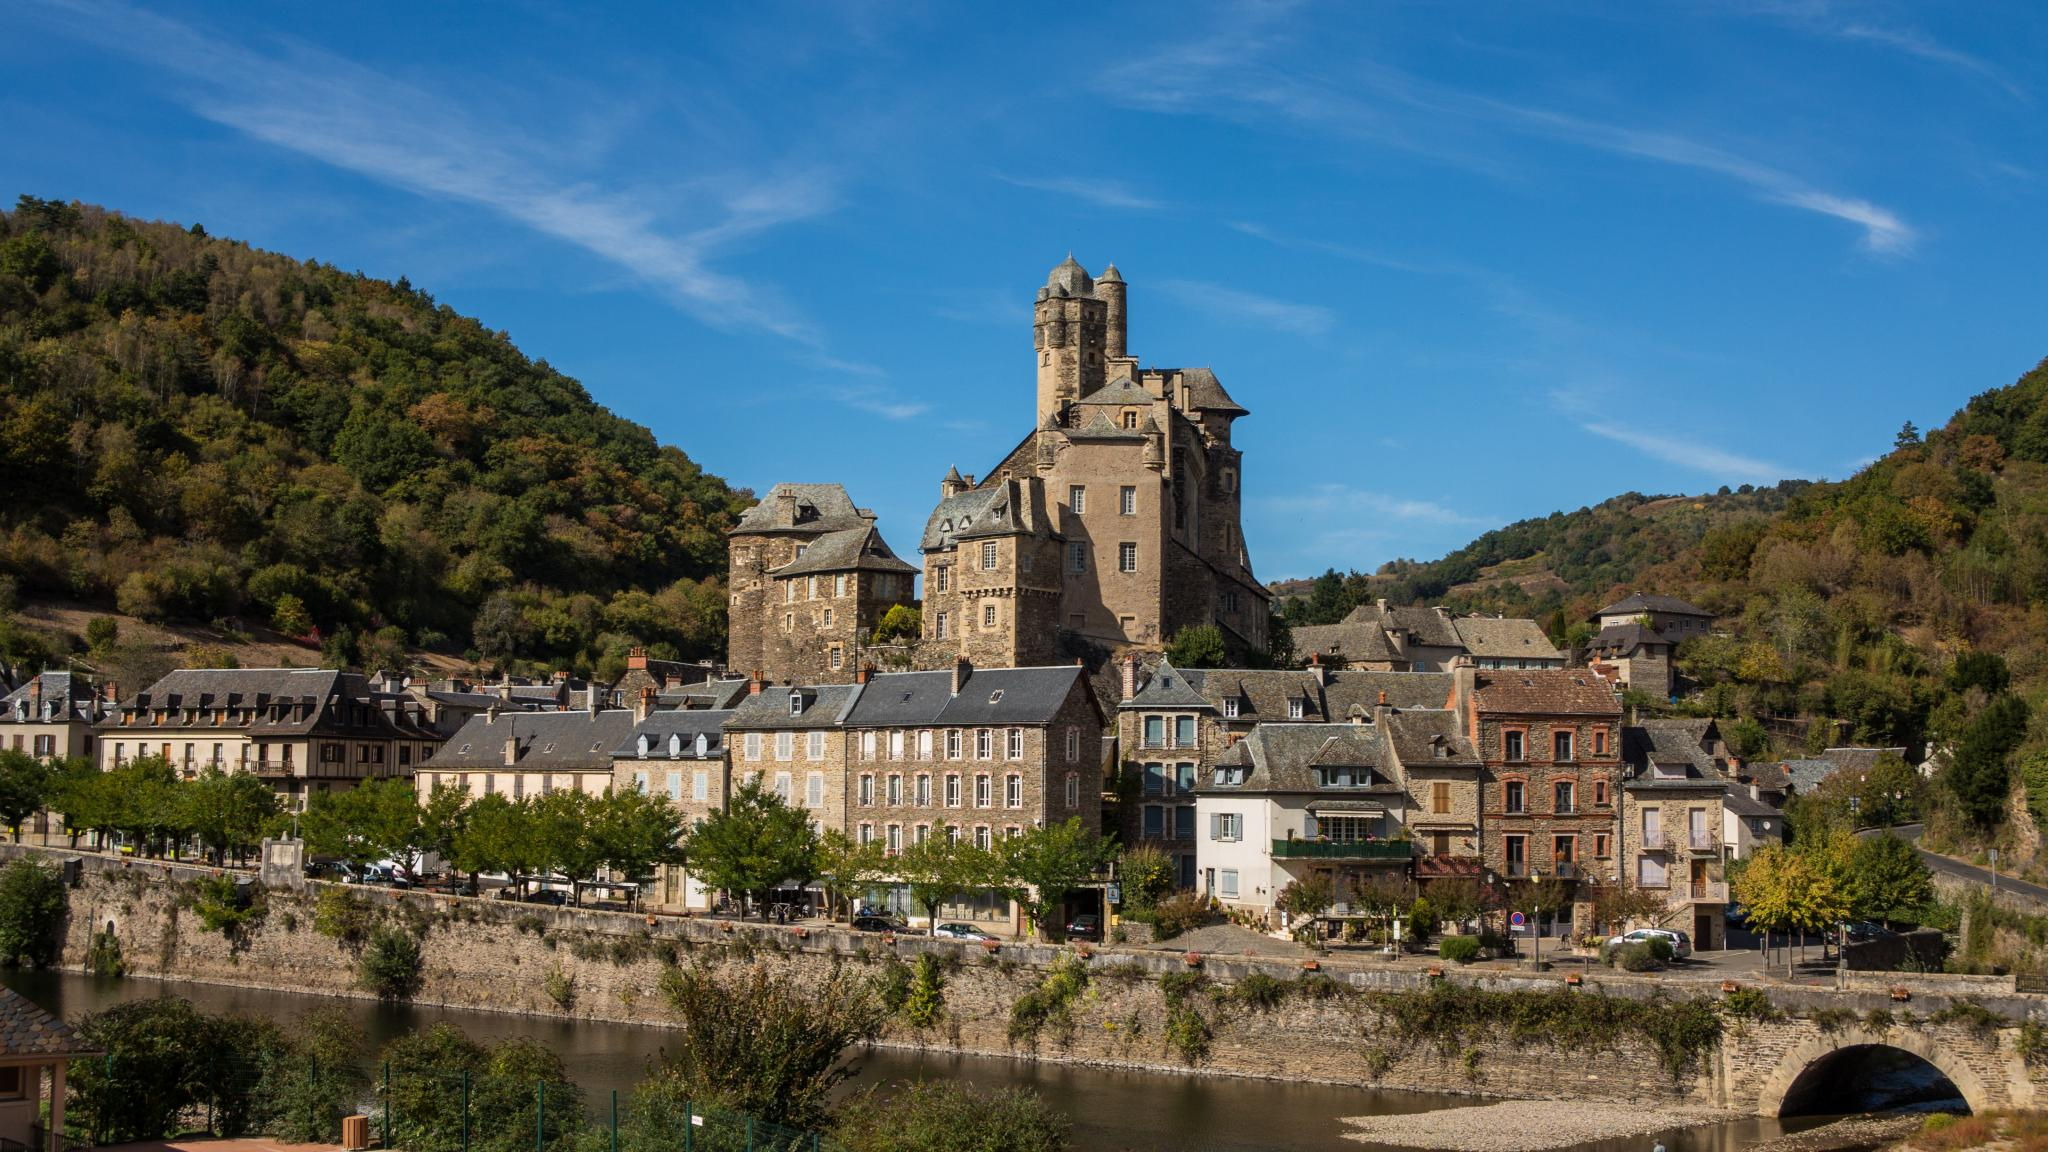 Jakobsweg Estaing Panorama mit Burg